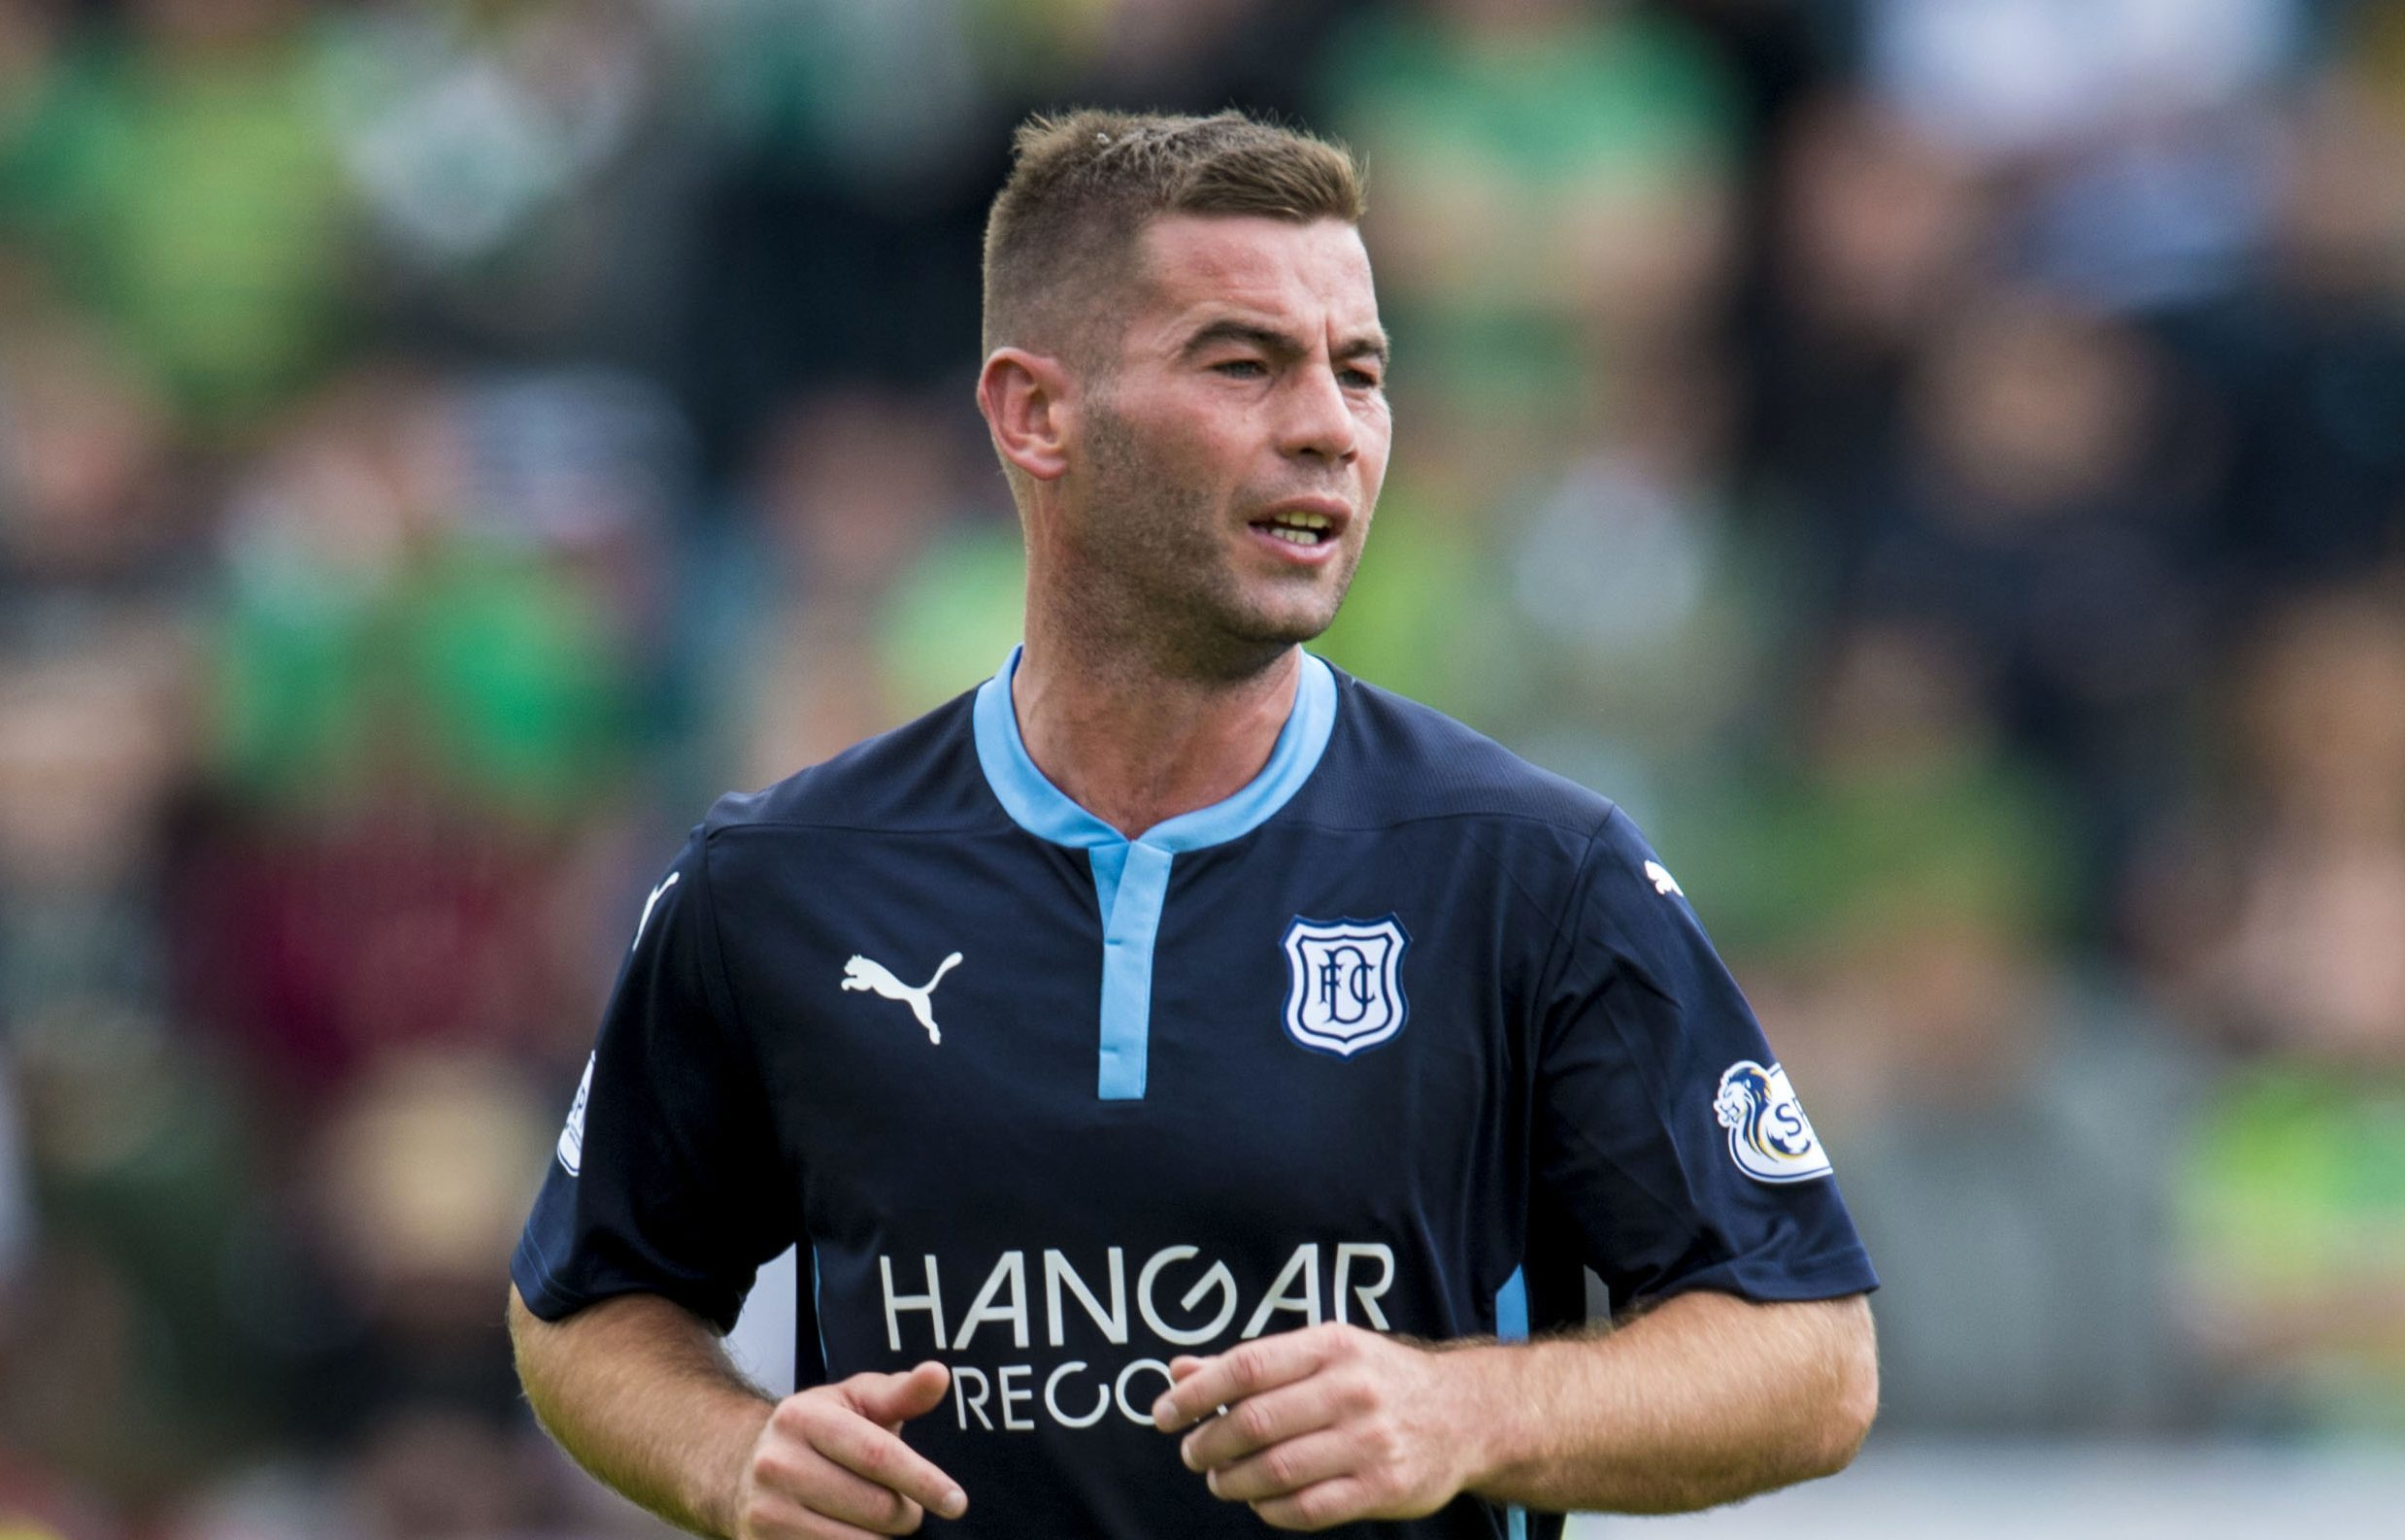 Peaso raved about his time at Dundee